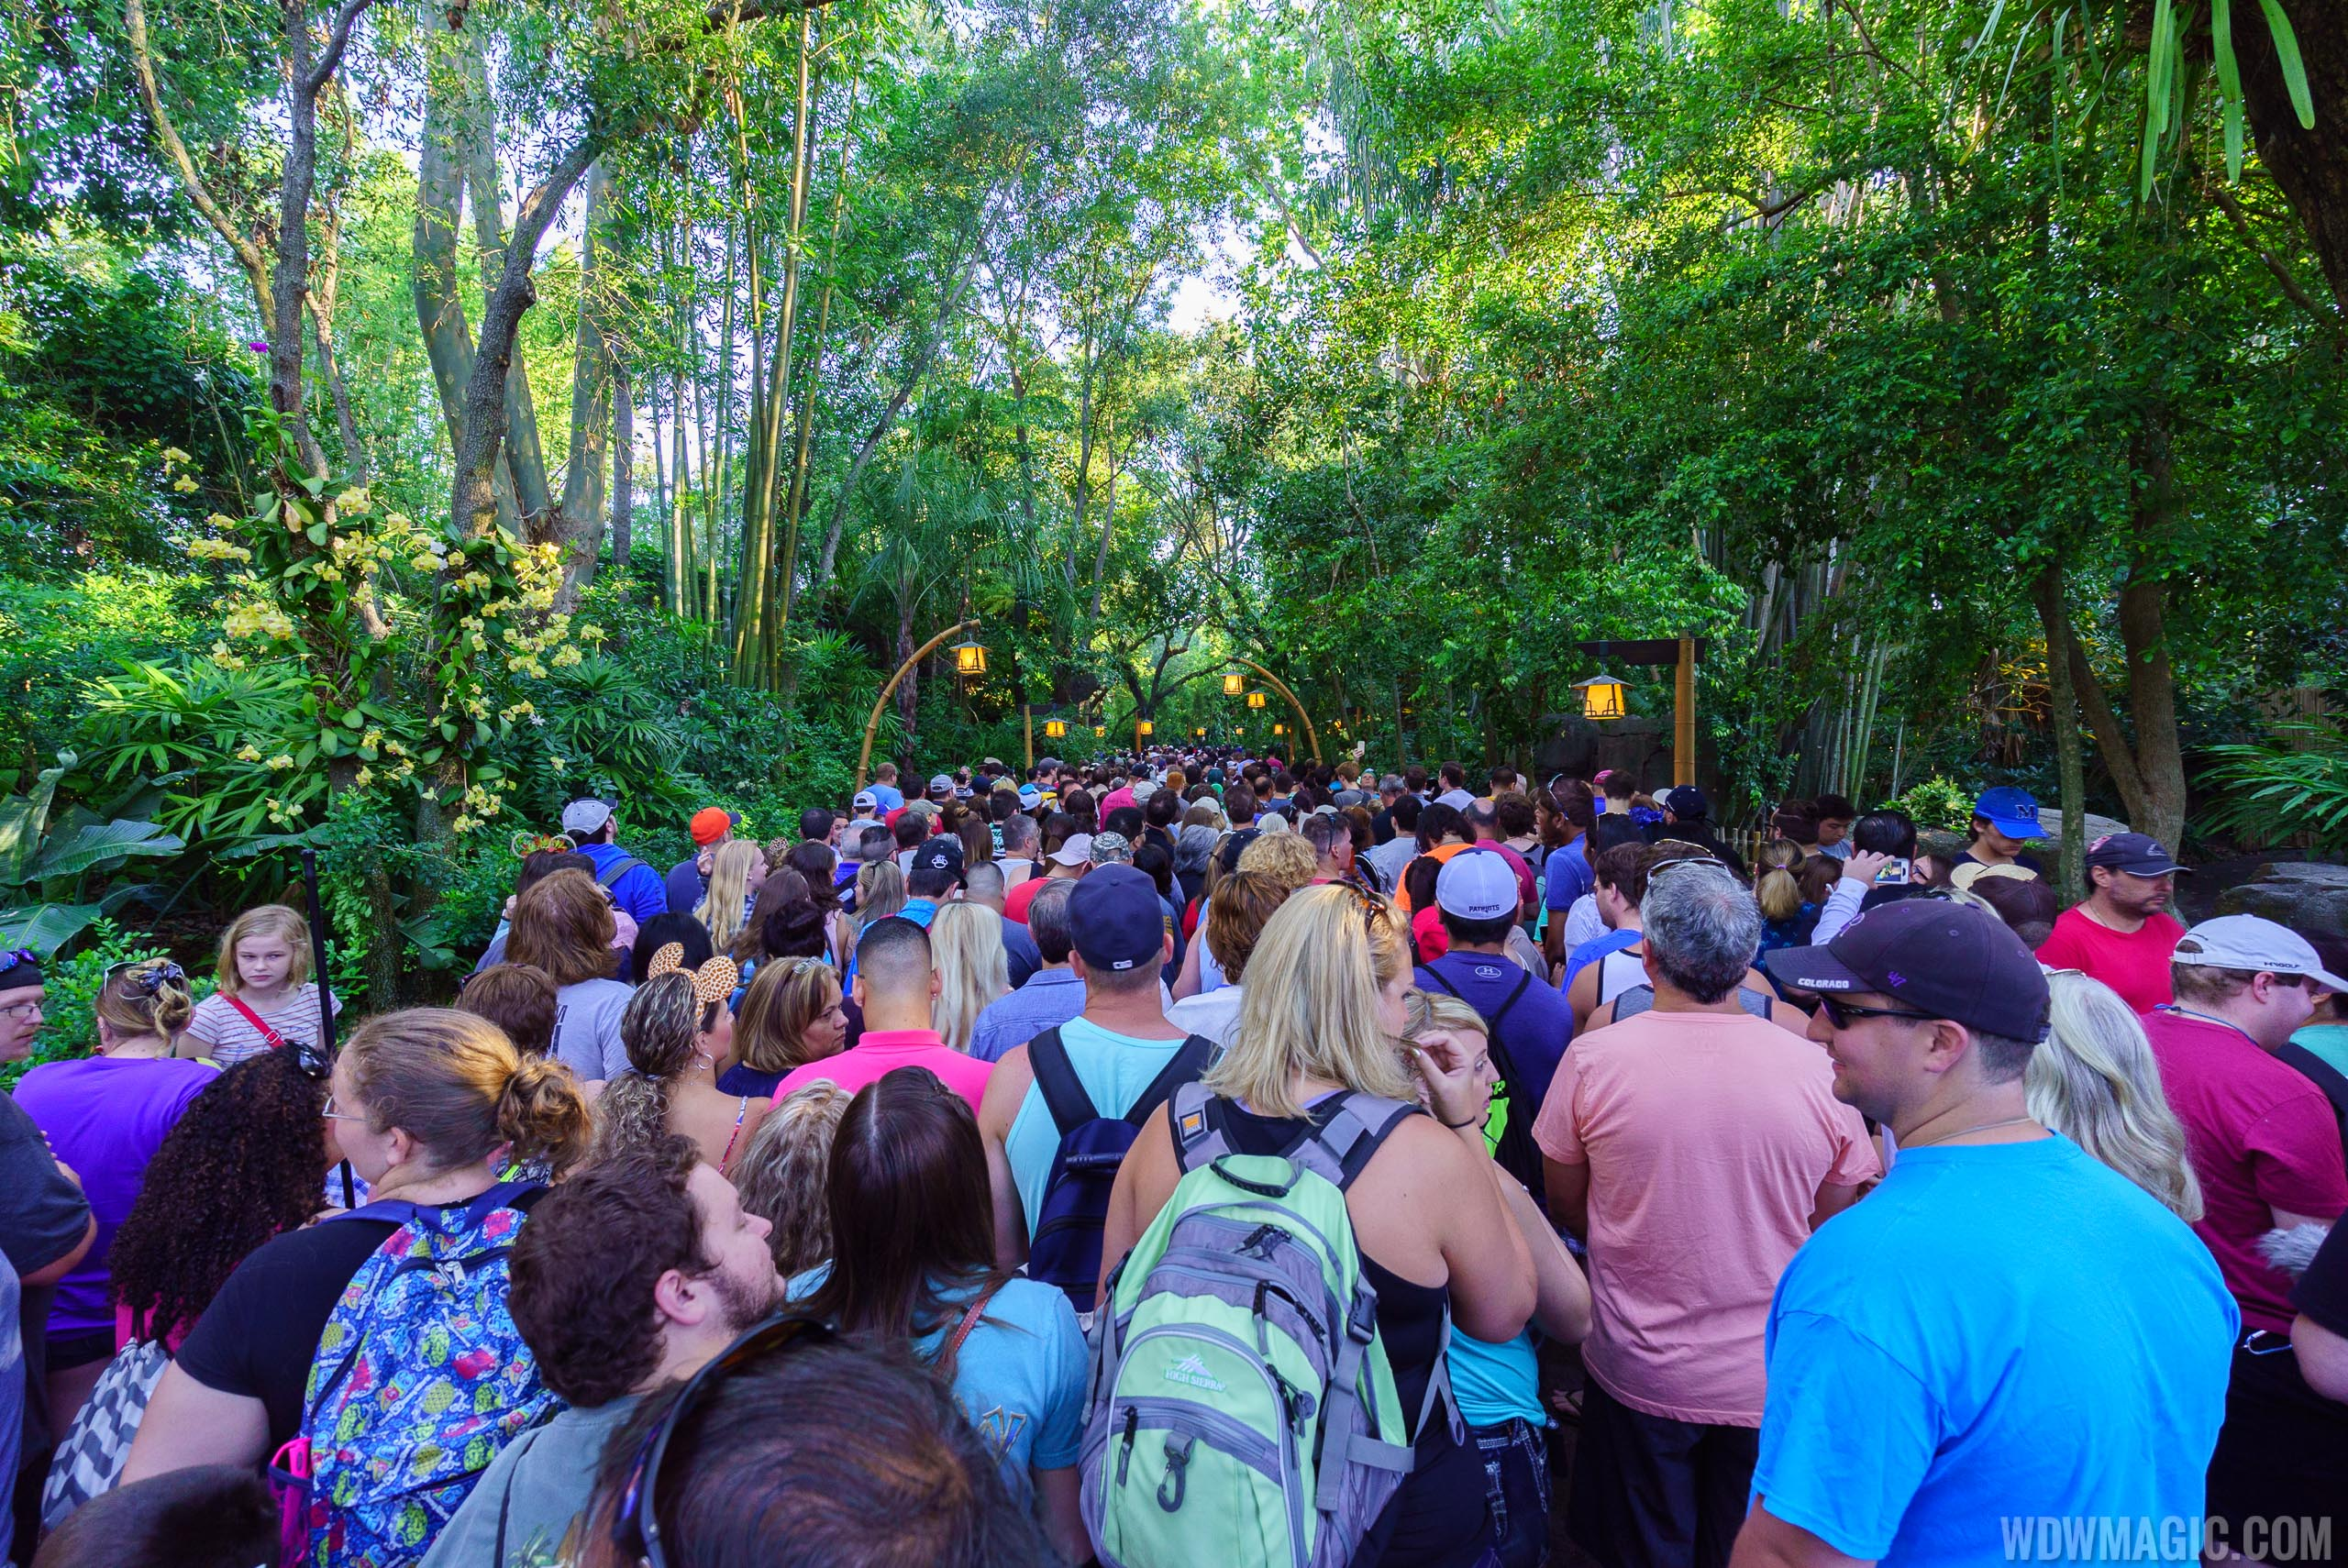 Guests line the Oasis walkways